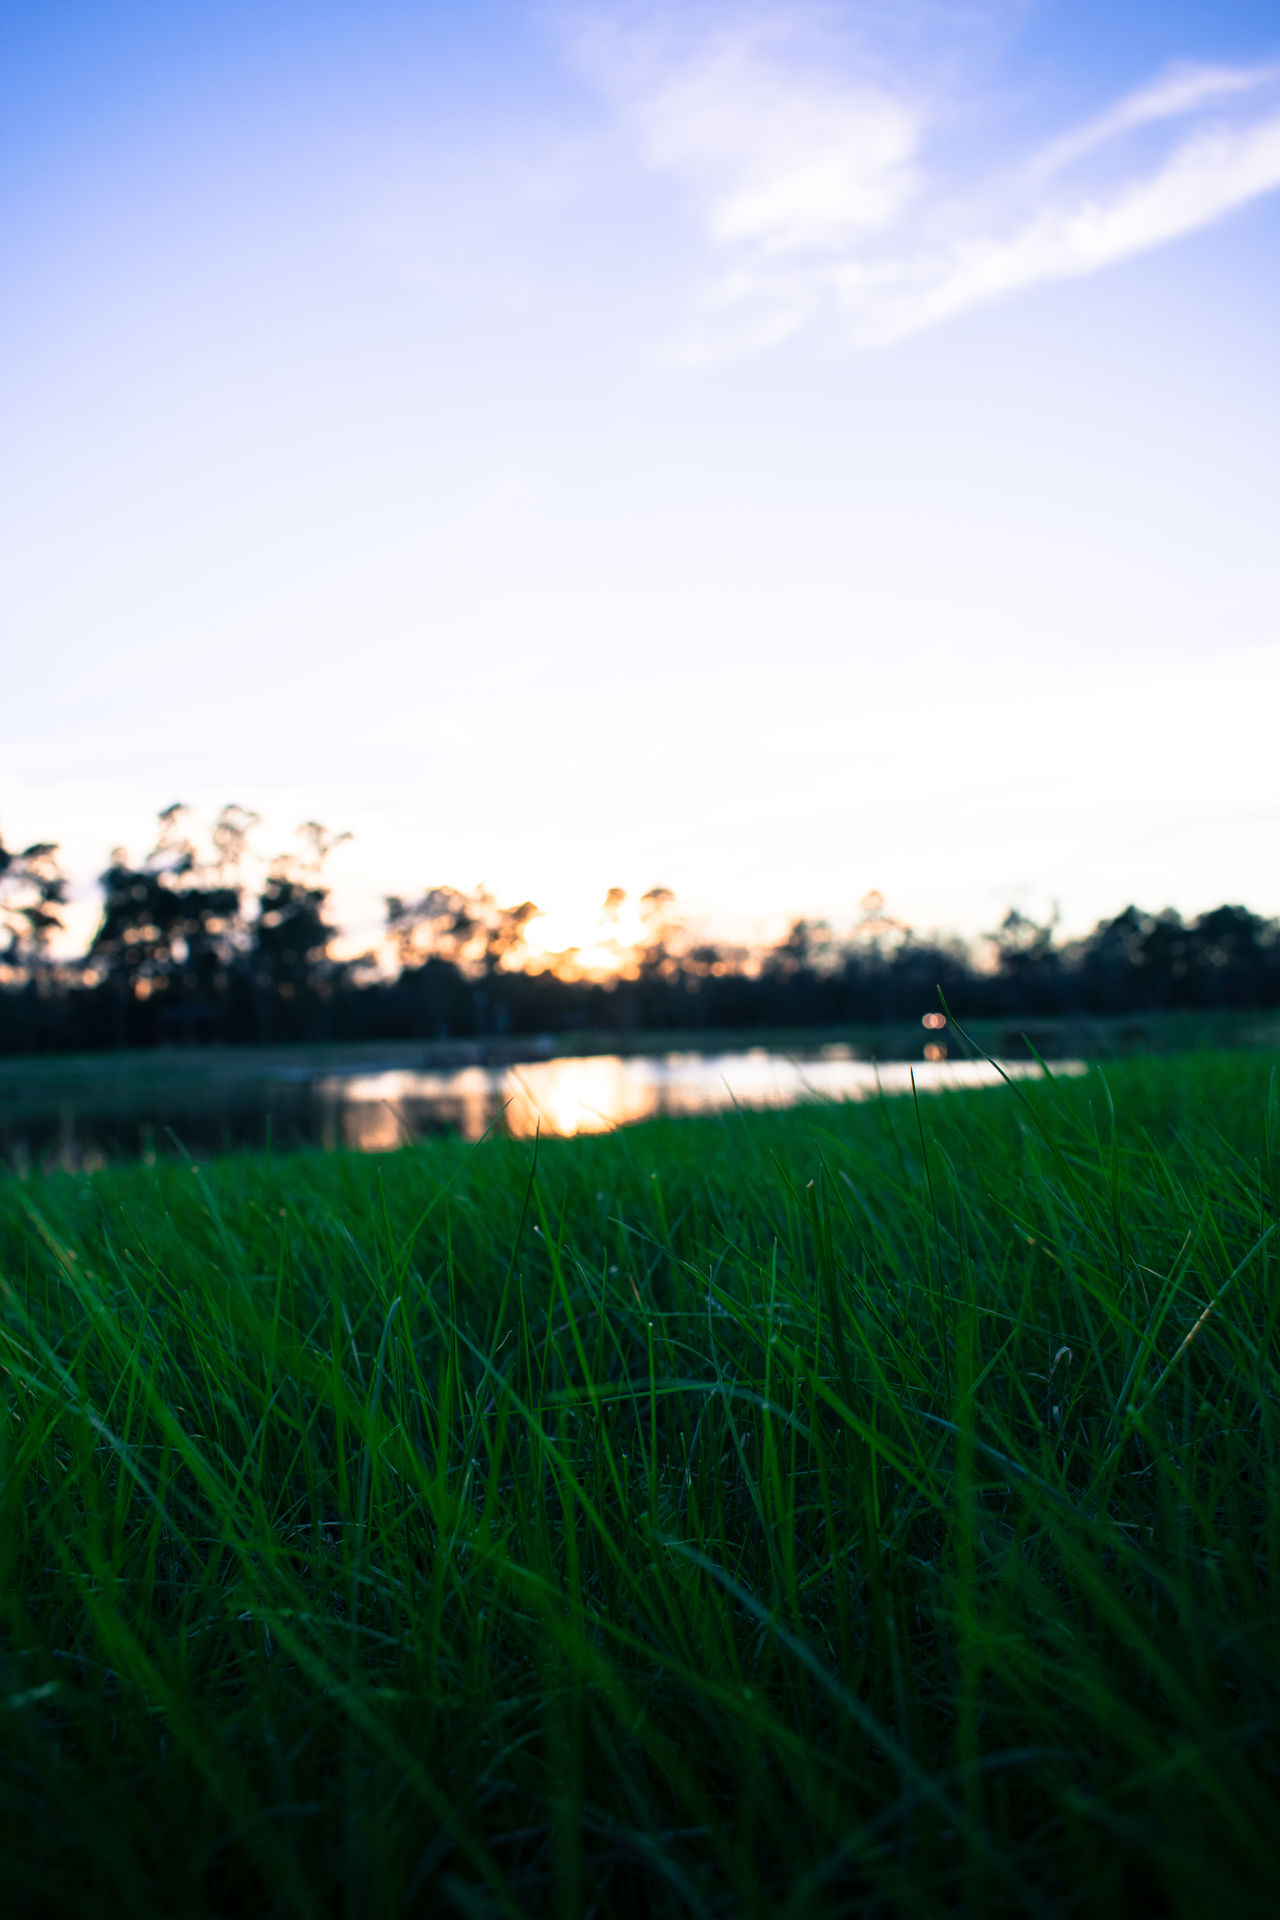 Agriculture Beauty In Nature Cereal Plant Day Field Grass Green - Golf Course Green Color Growth Landscape Nature No People Outdoors Plant Rural Scene Scenics Sky Sunset Tranquil Scene Tree